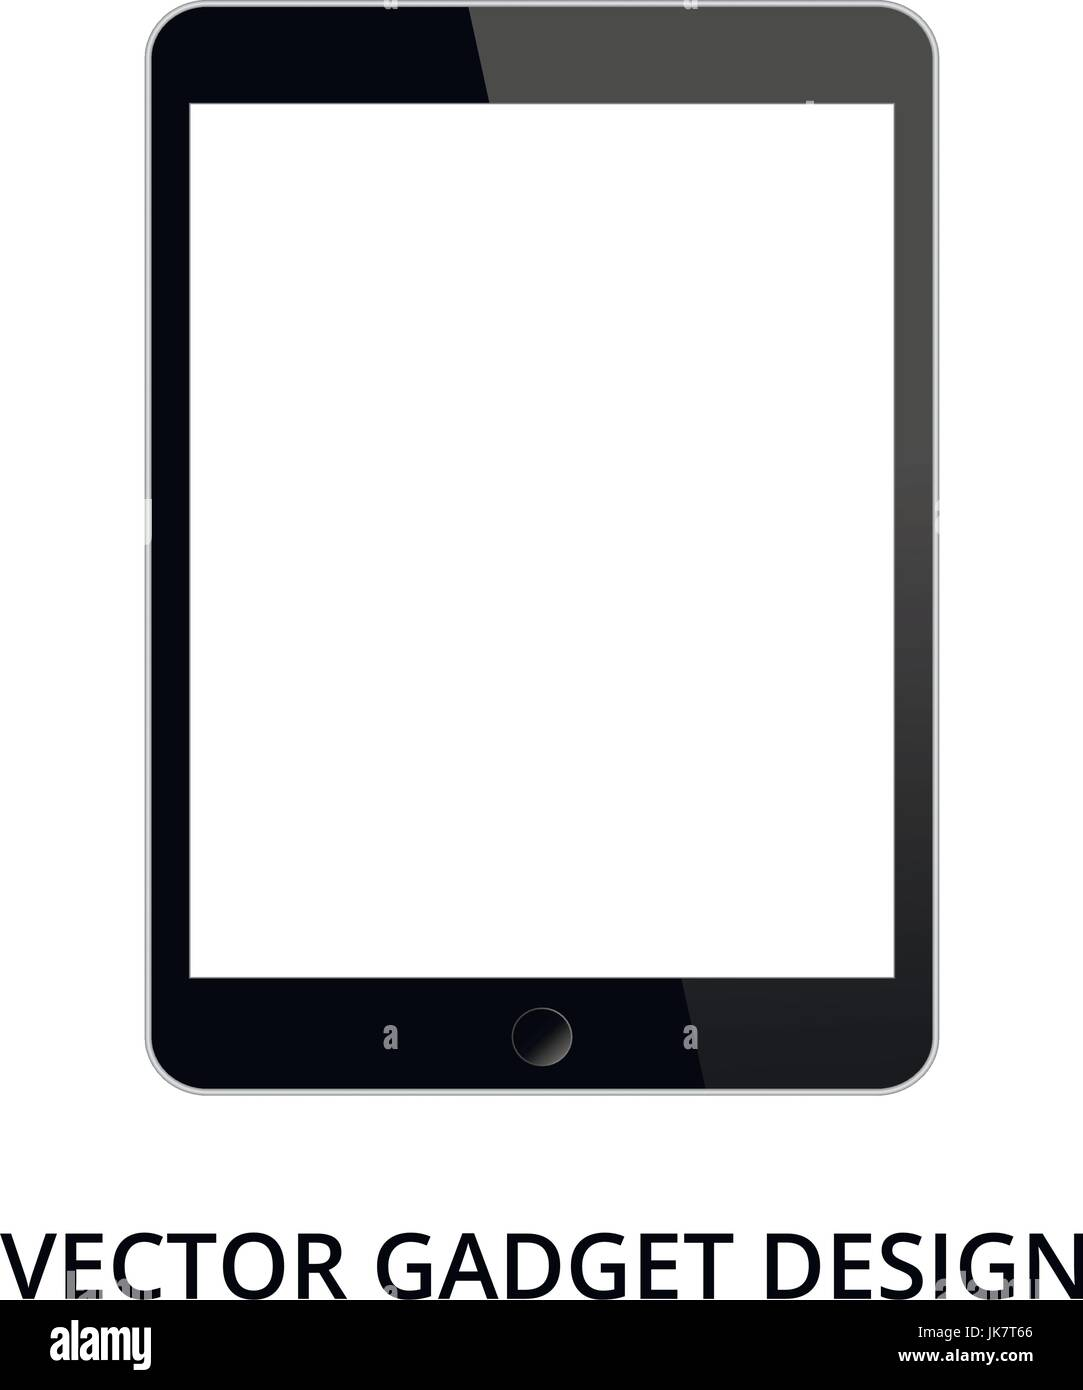 Tablet pc on white background. Realistic vector illustration, for graphic and web design - Stock Image